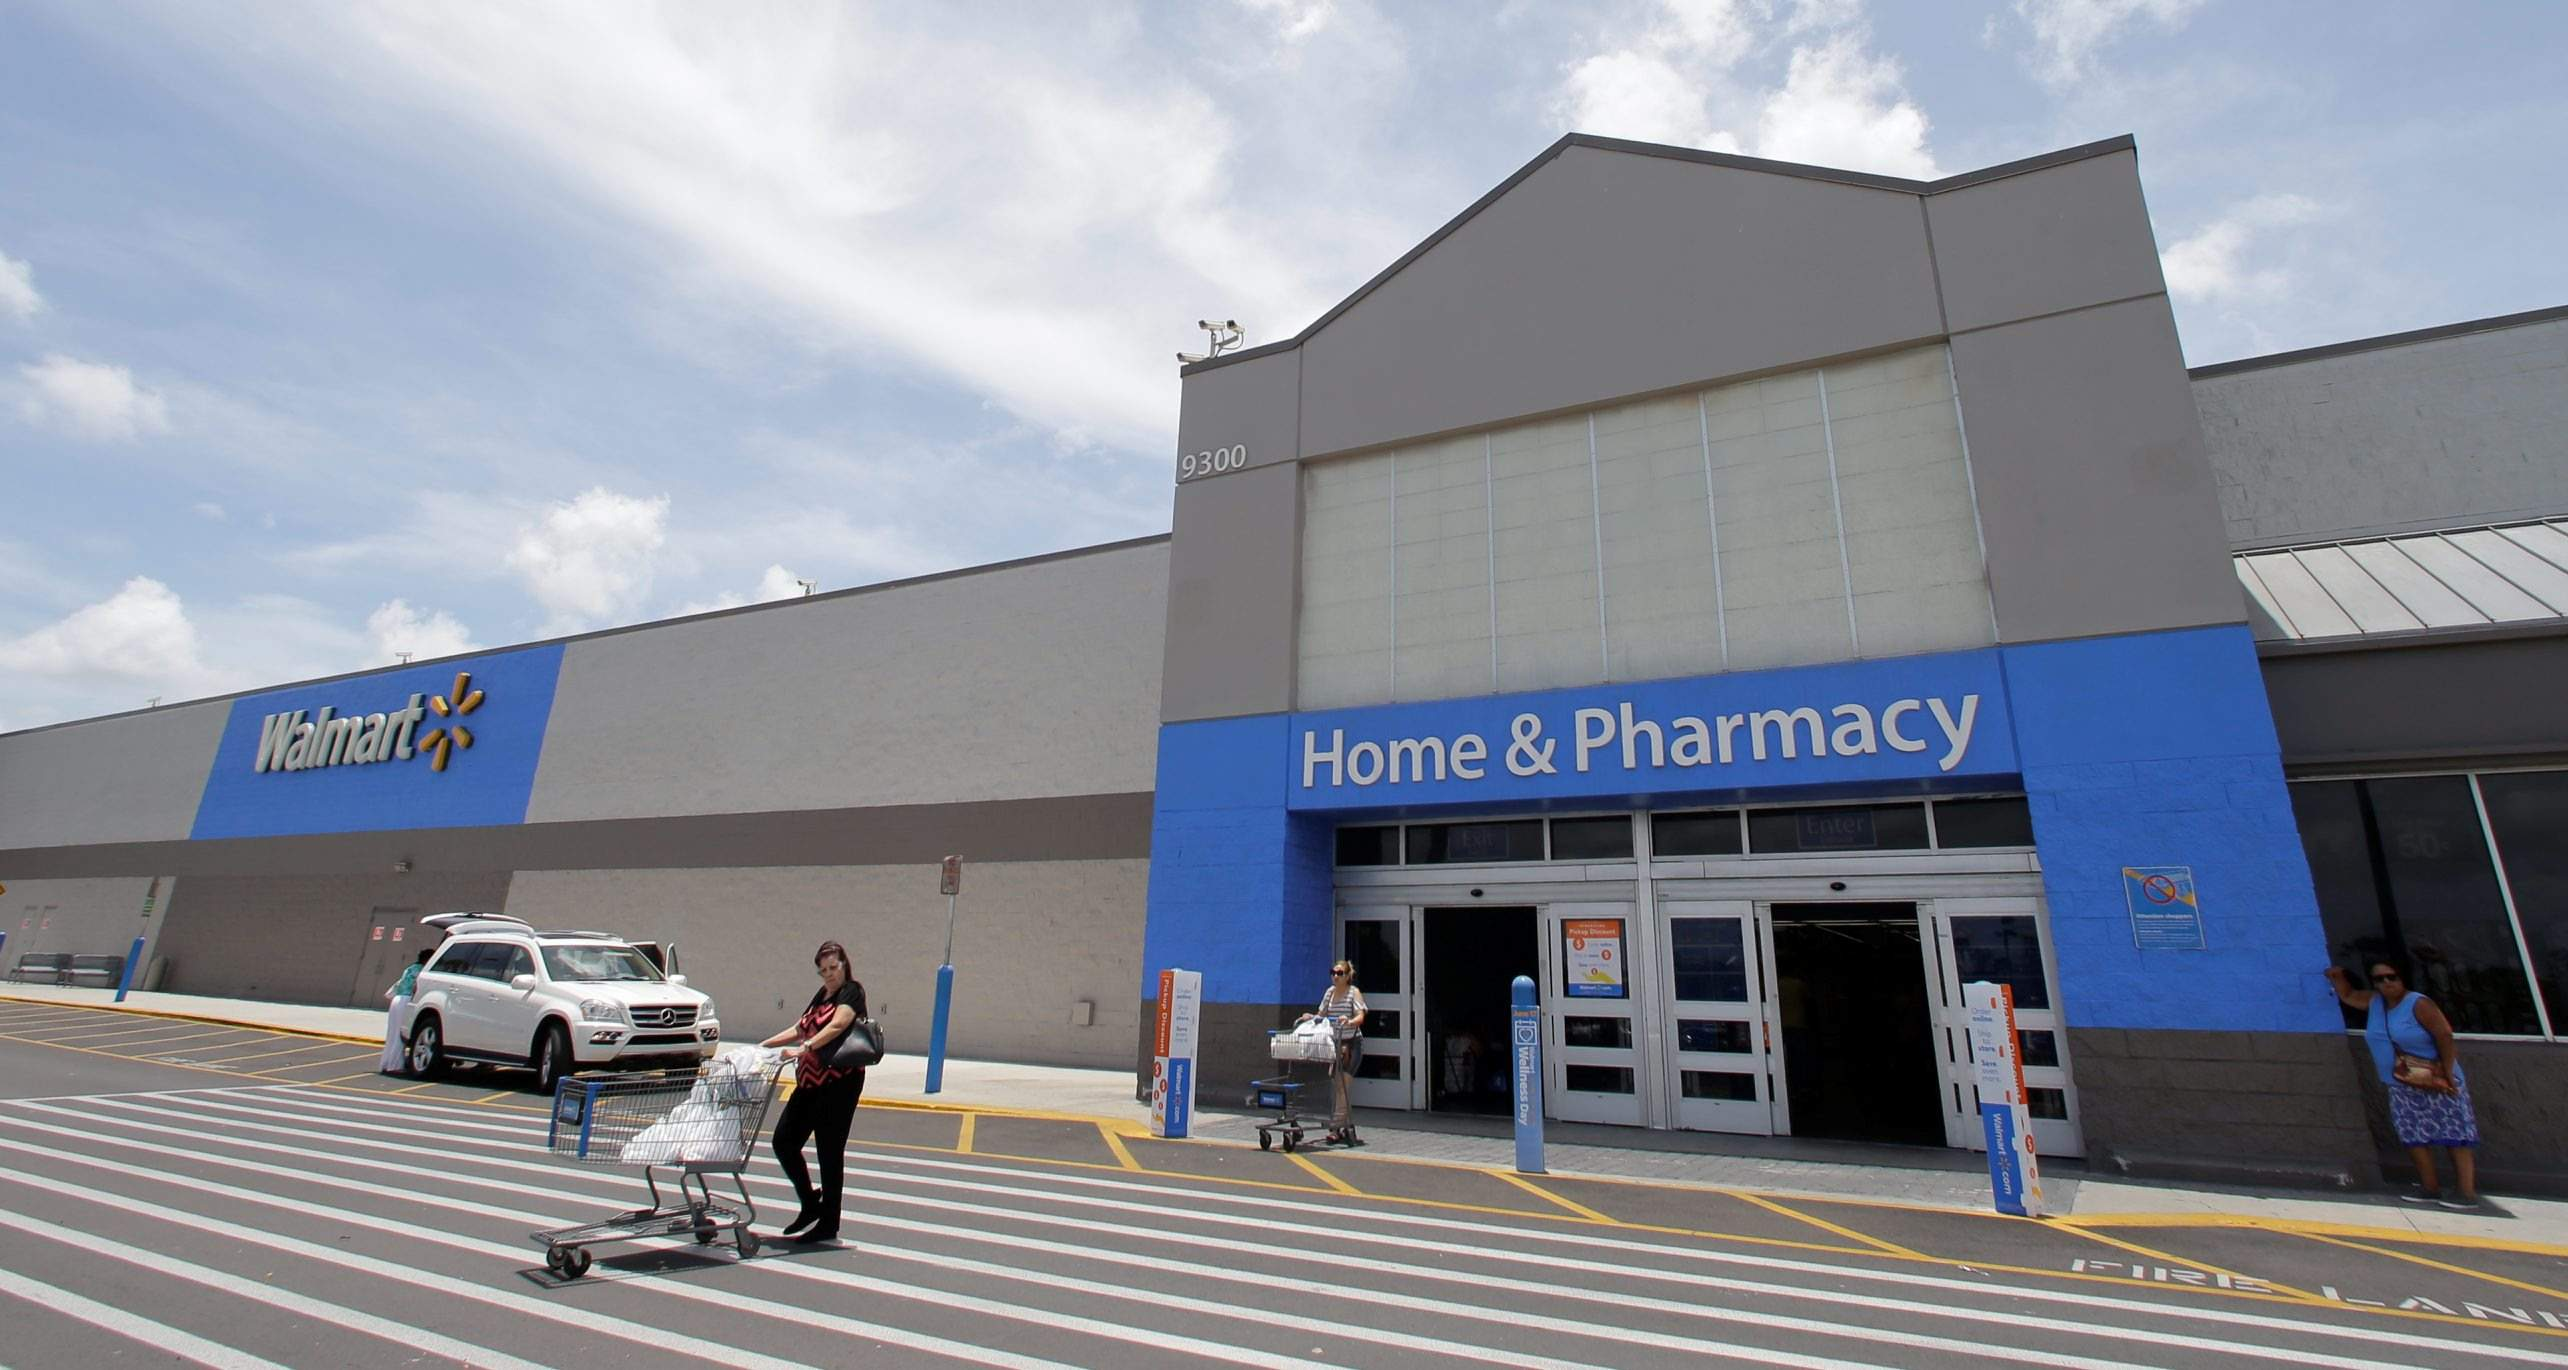 walmart will aggressively pursue online sales over the next few years and plans to build just 25 new stores next year